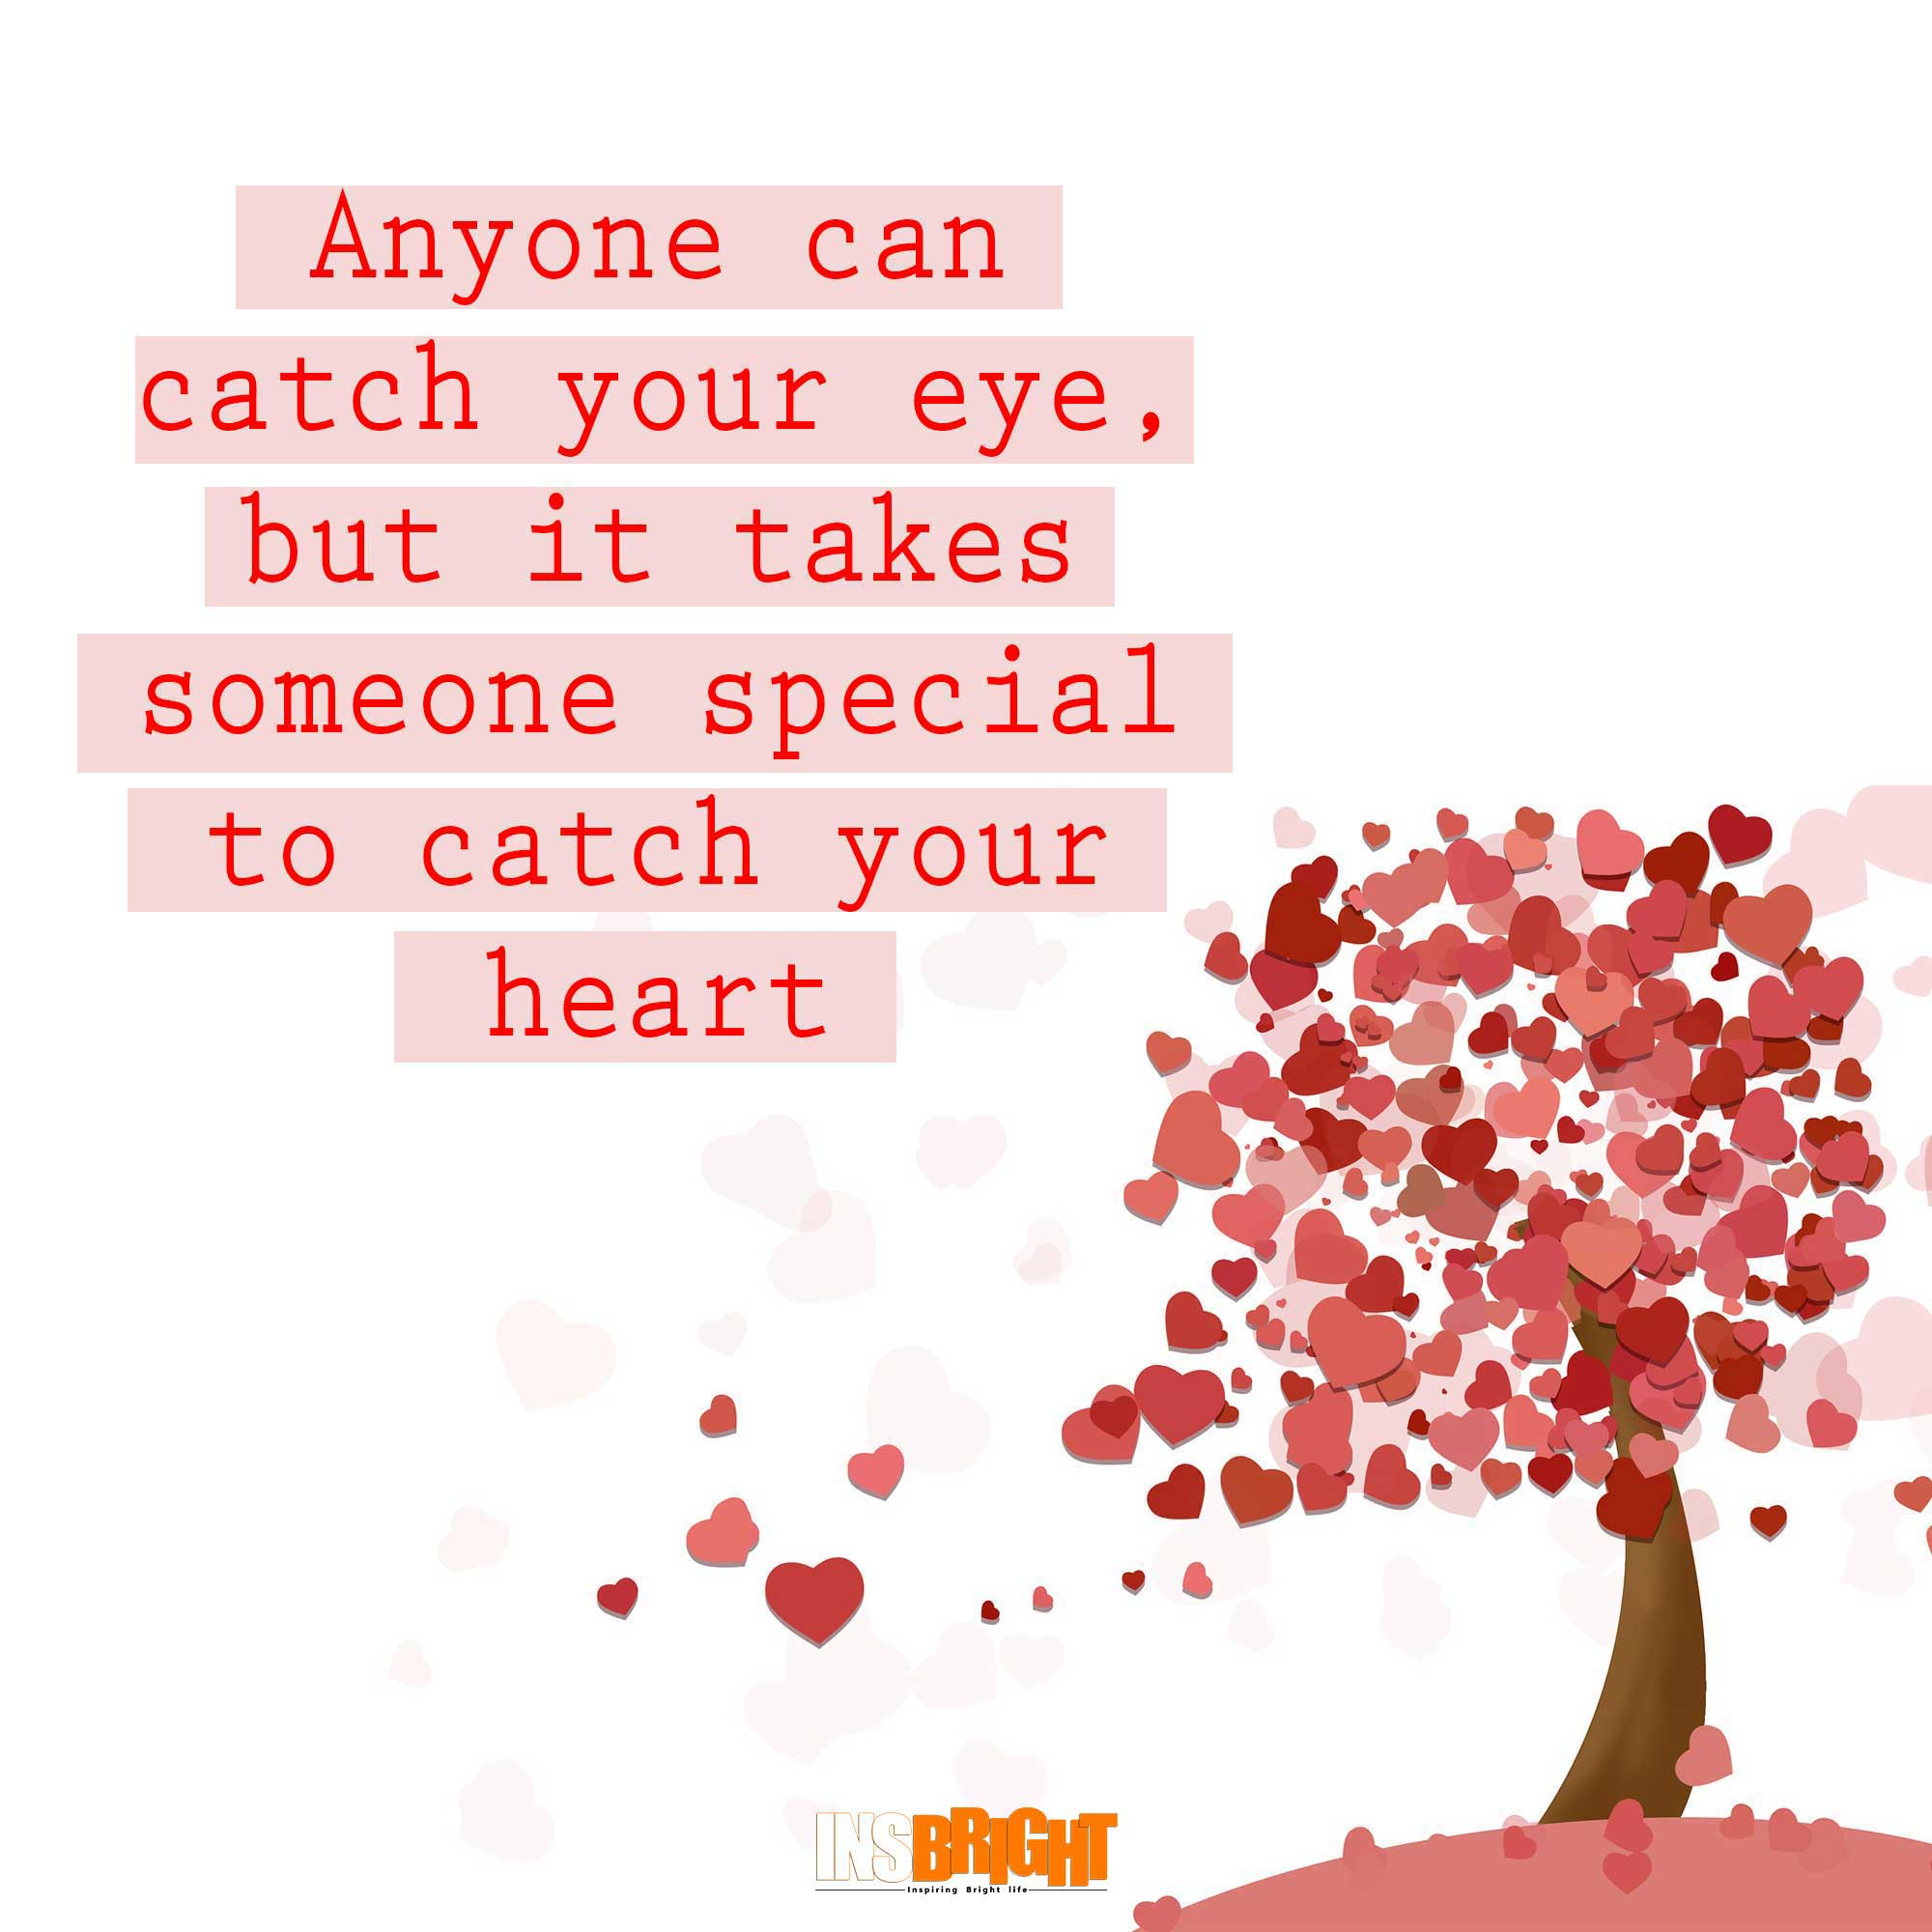 Valentines Quotes For Her Cute Happy Valentines Day Quotes With Images For Him Or Her Or